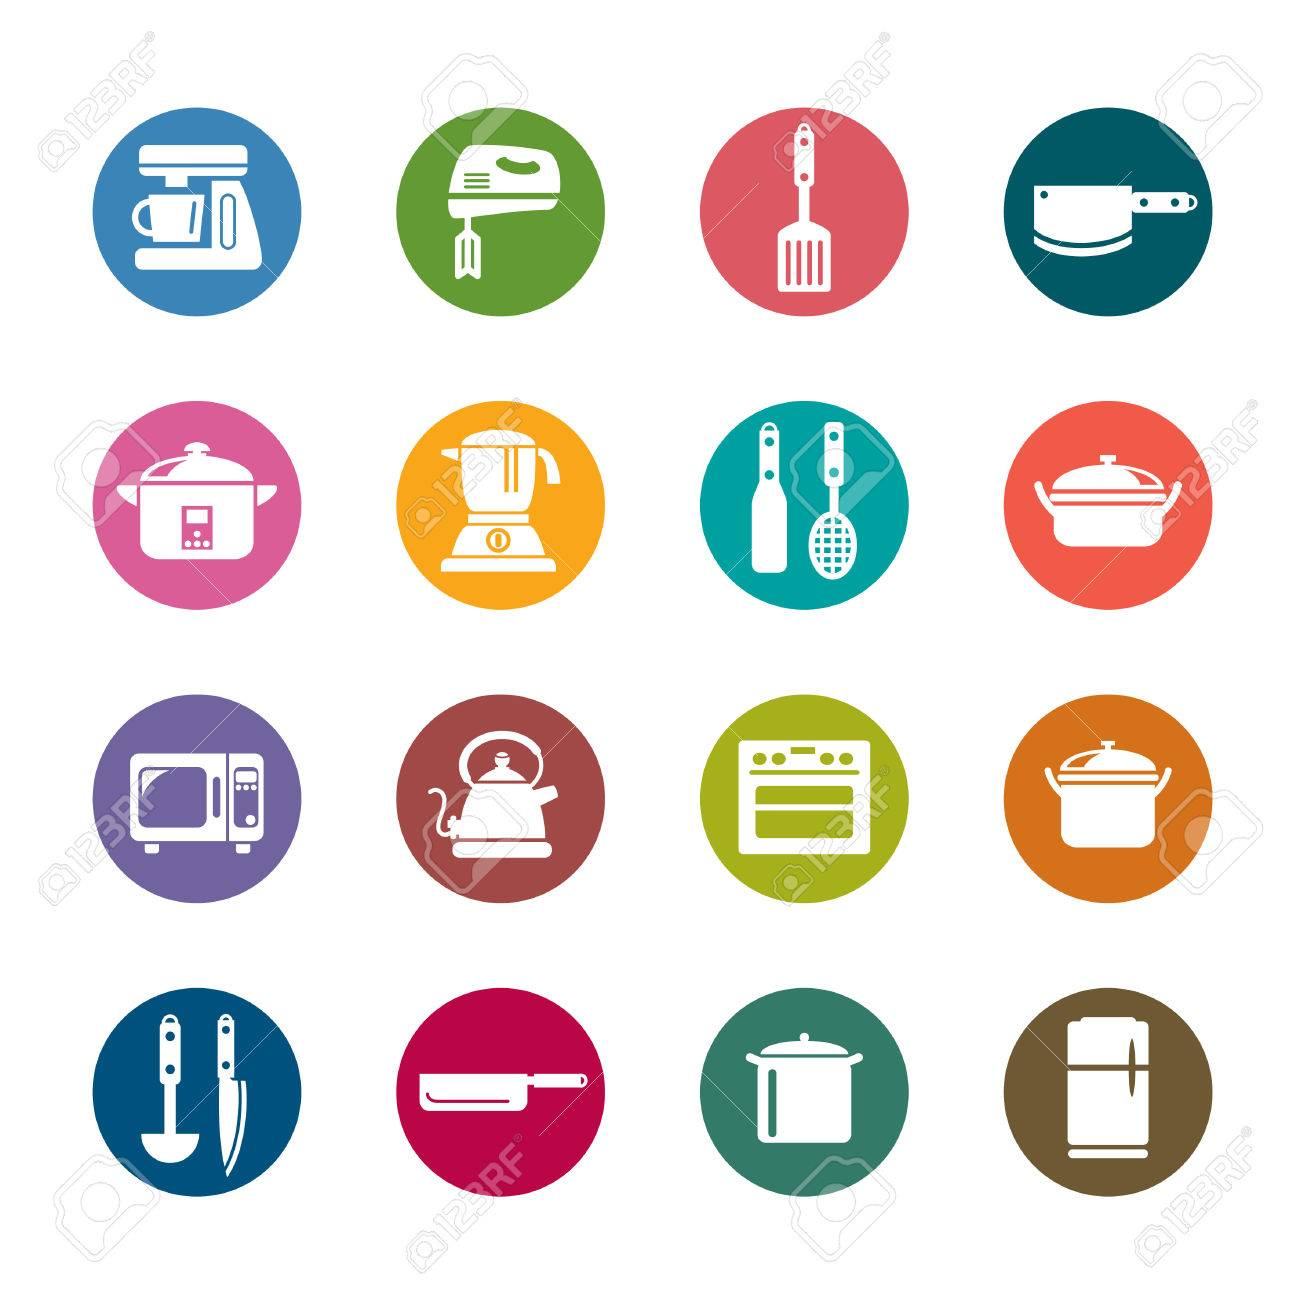 Uncategorized Kitchen Utensils And Appliances kitchen utensils and appliances color icons royalty free cliparts stock vector 30347994